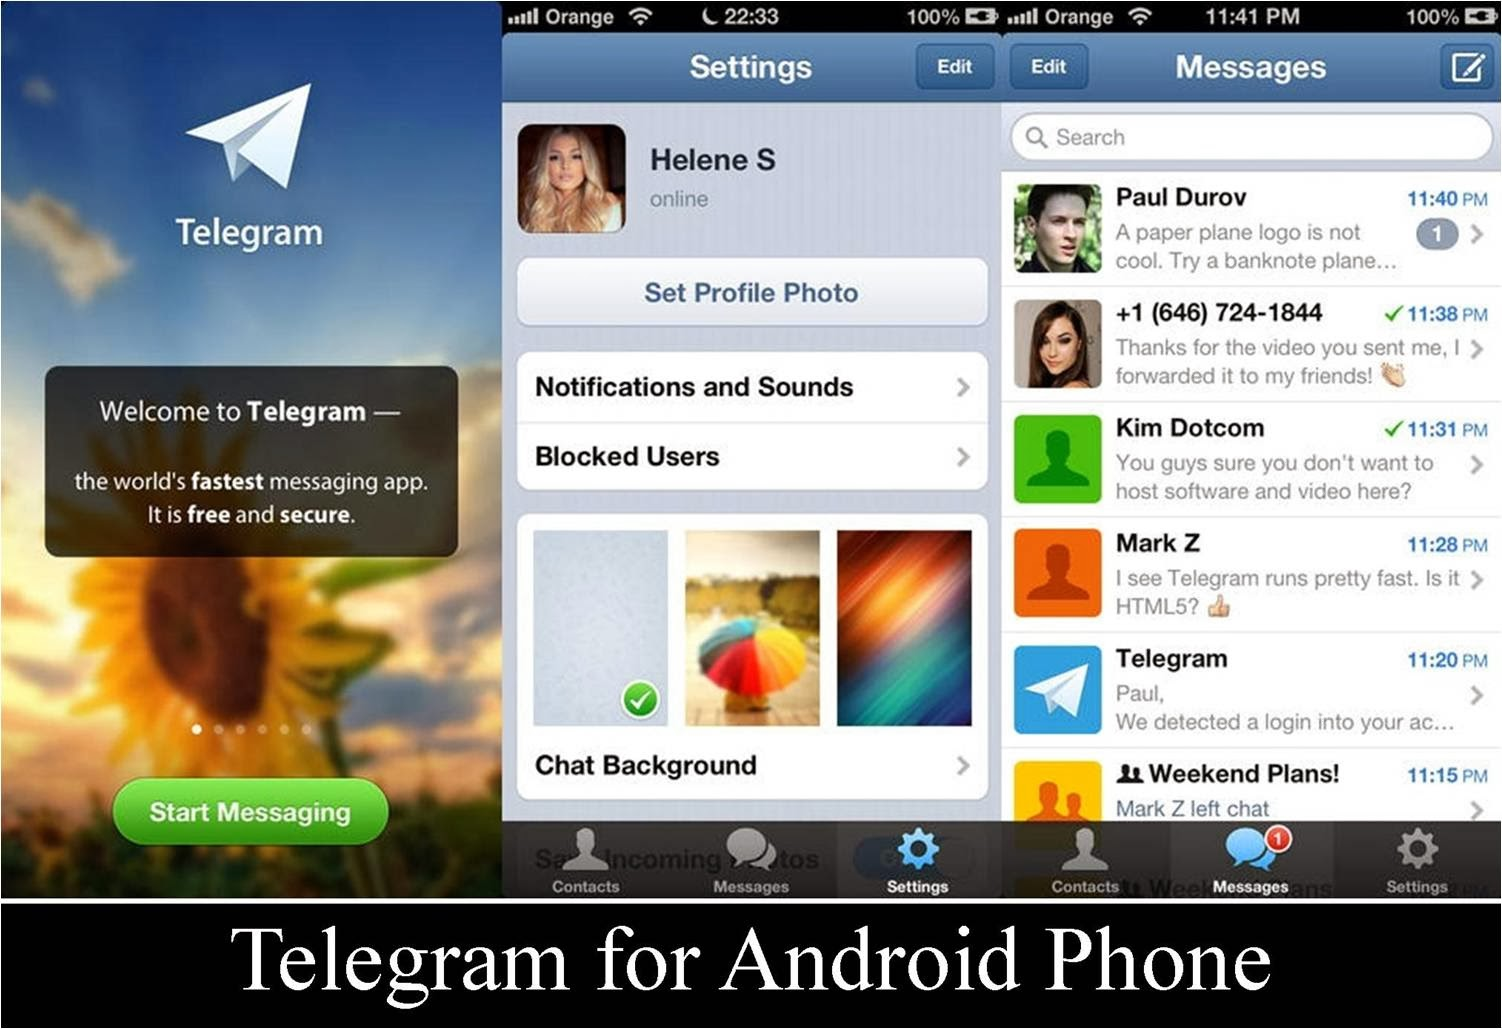 Telegram app running on an Android phone